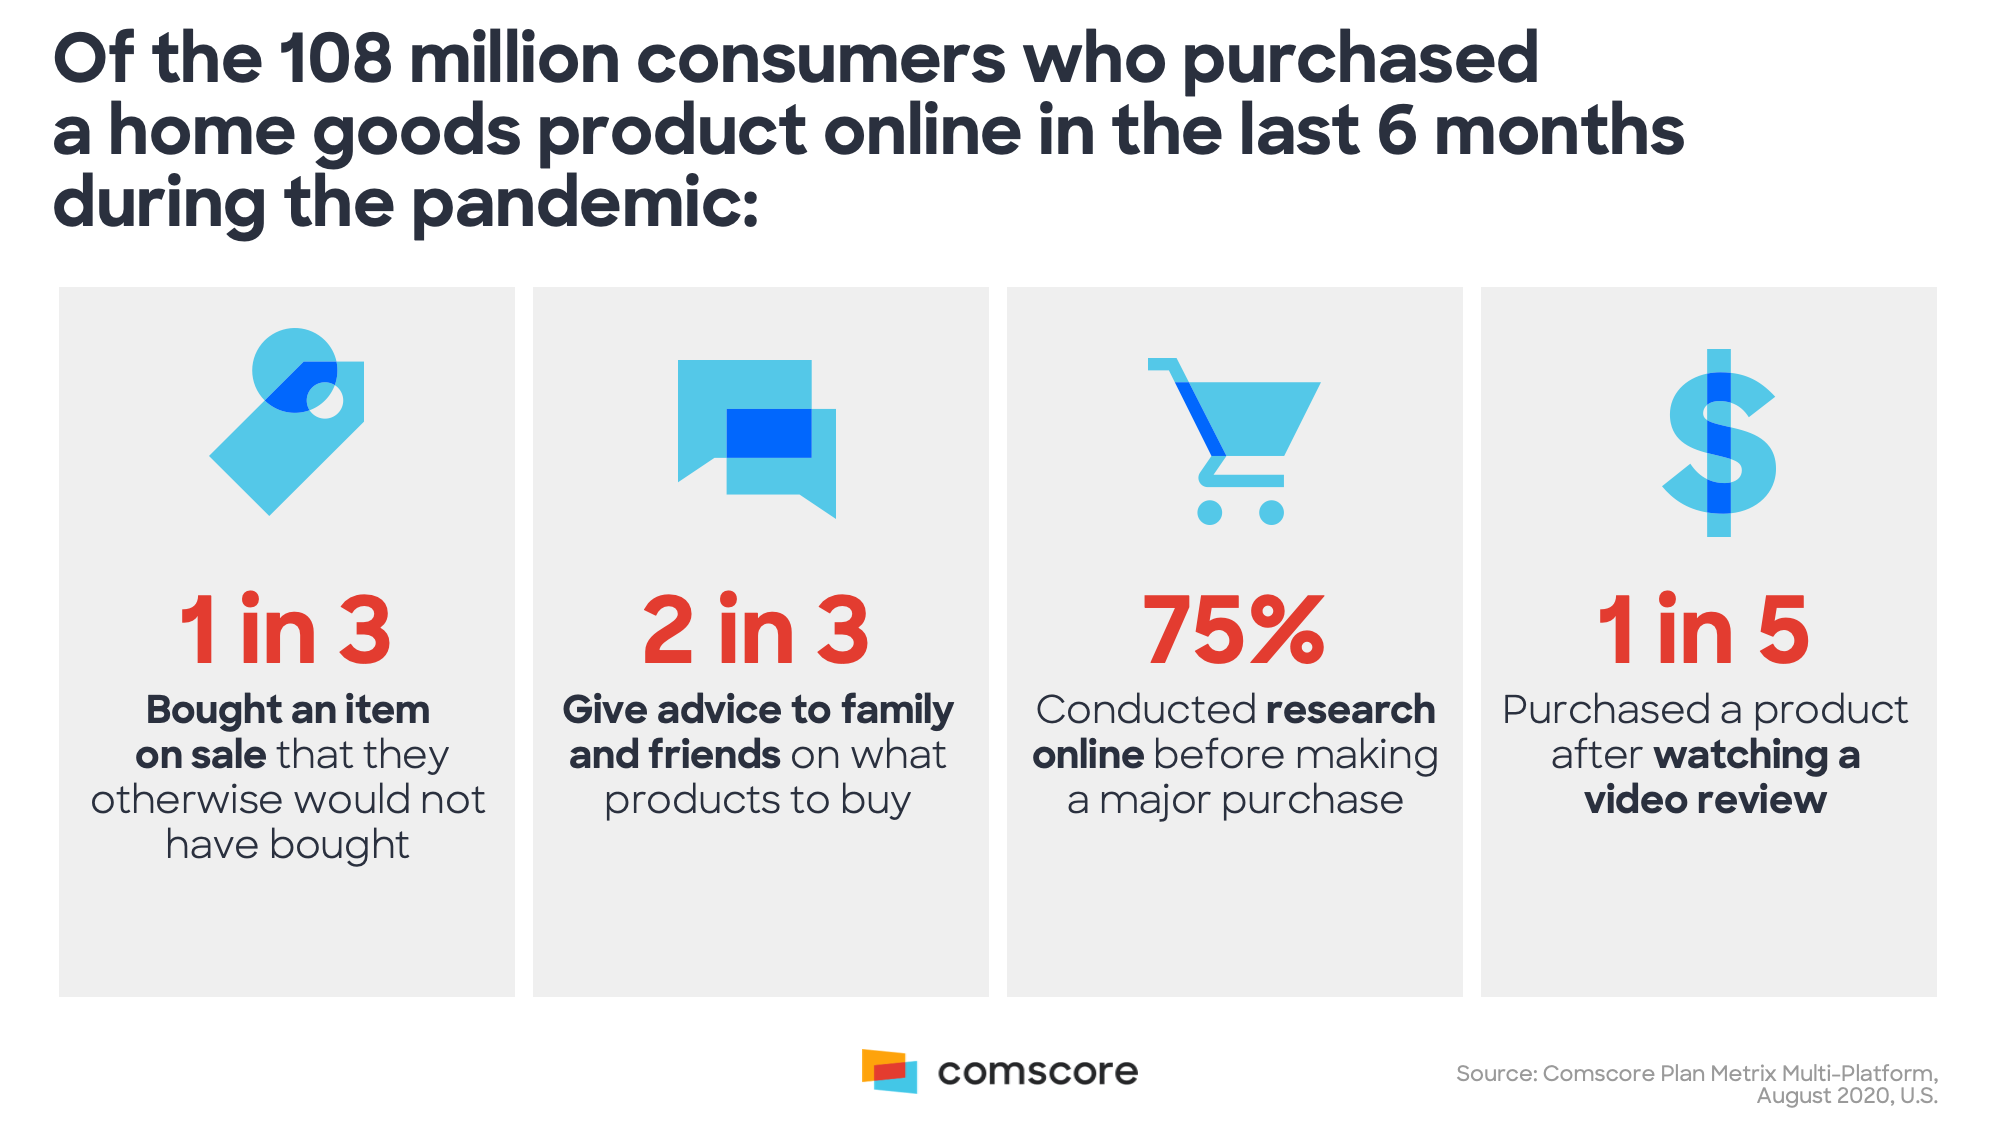 Of the 180 million consumers who purchased home goods online in the last 6 months